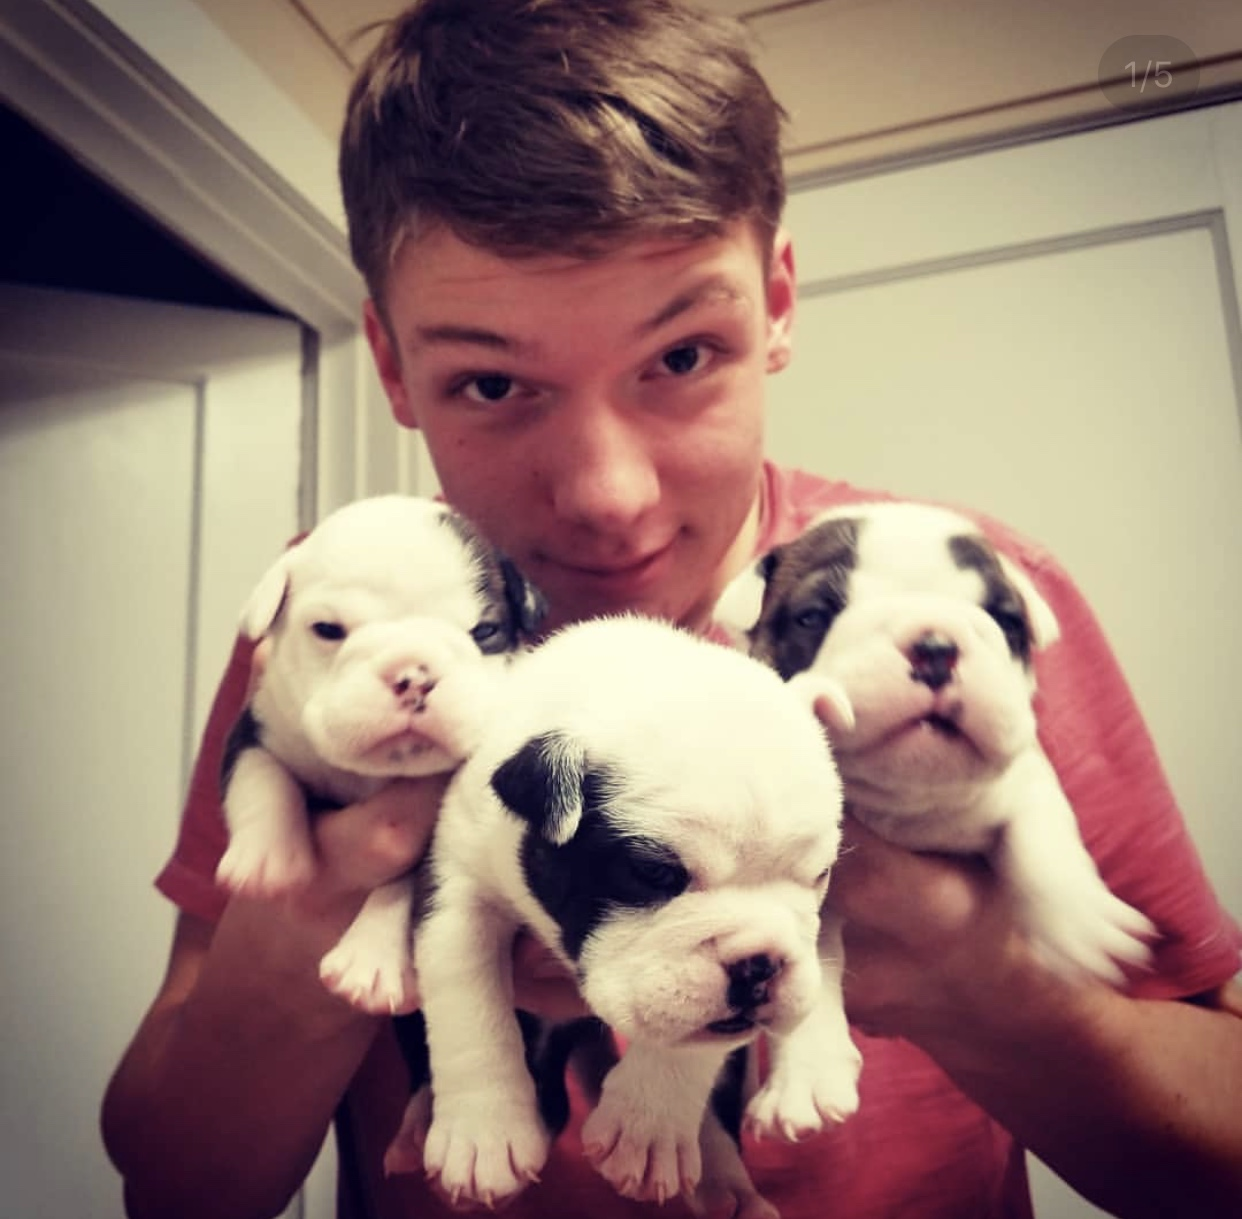 Caleb Allen, high school junior, with three of his brand-new French Bulldog puppies. His dog Angel had puppies less than a month ago, so his hands are full - no pun intended.